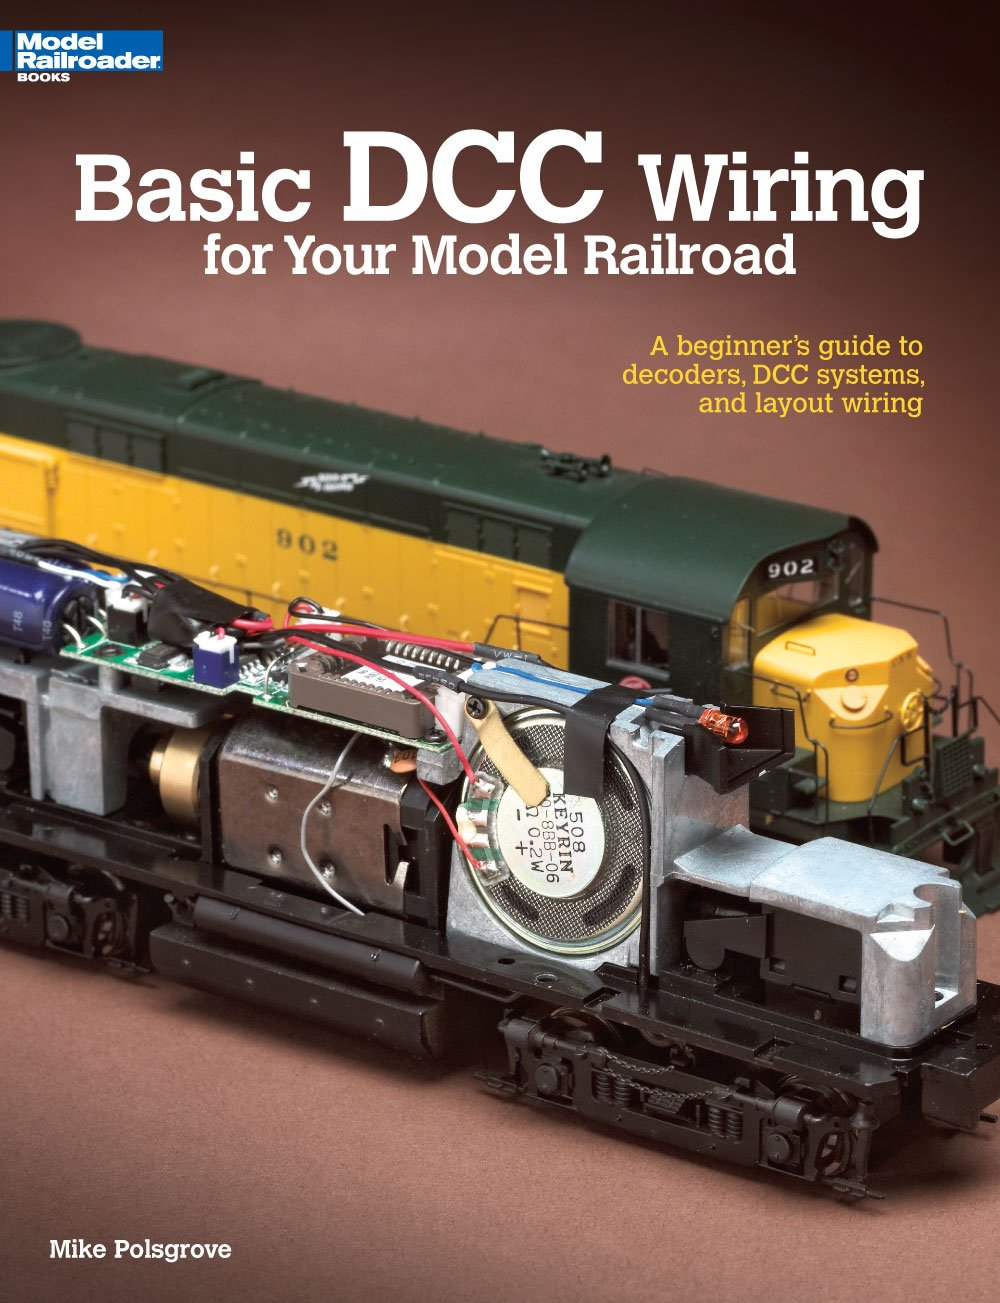 basic dcc wiring for your model railroad a beginner s guide to rh amazon com DCC Wiring Basics DCC Wiring Basics